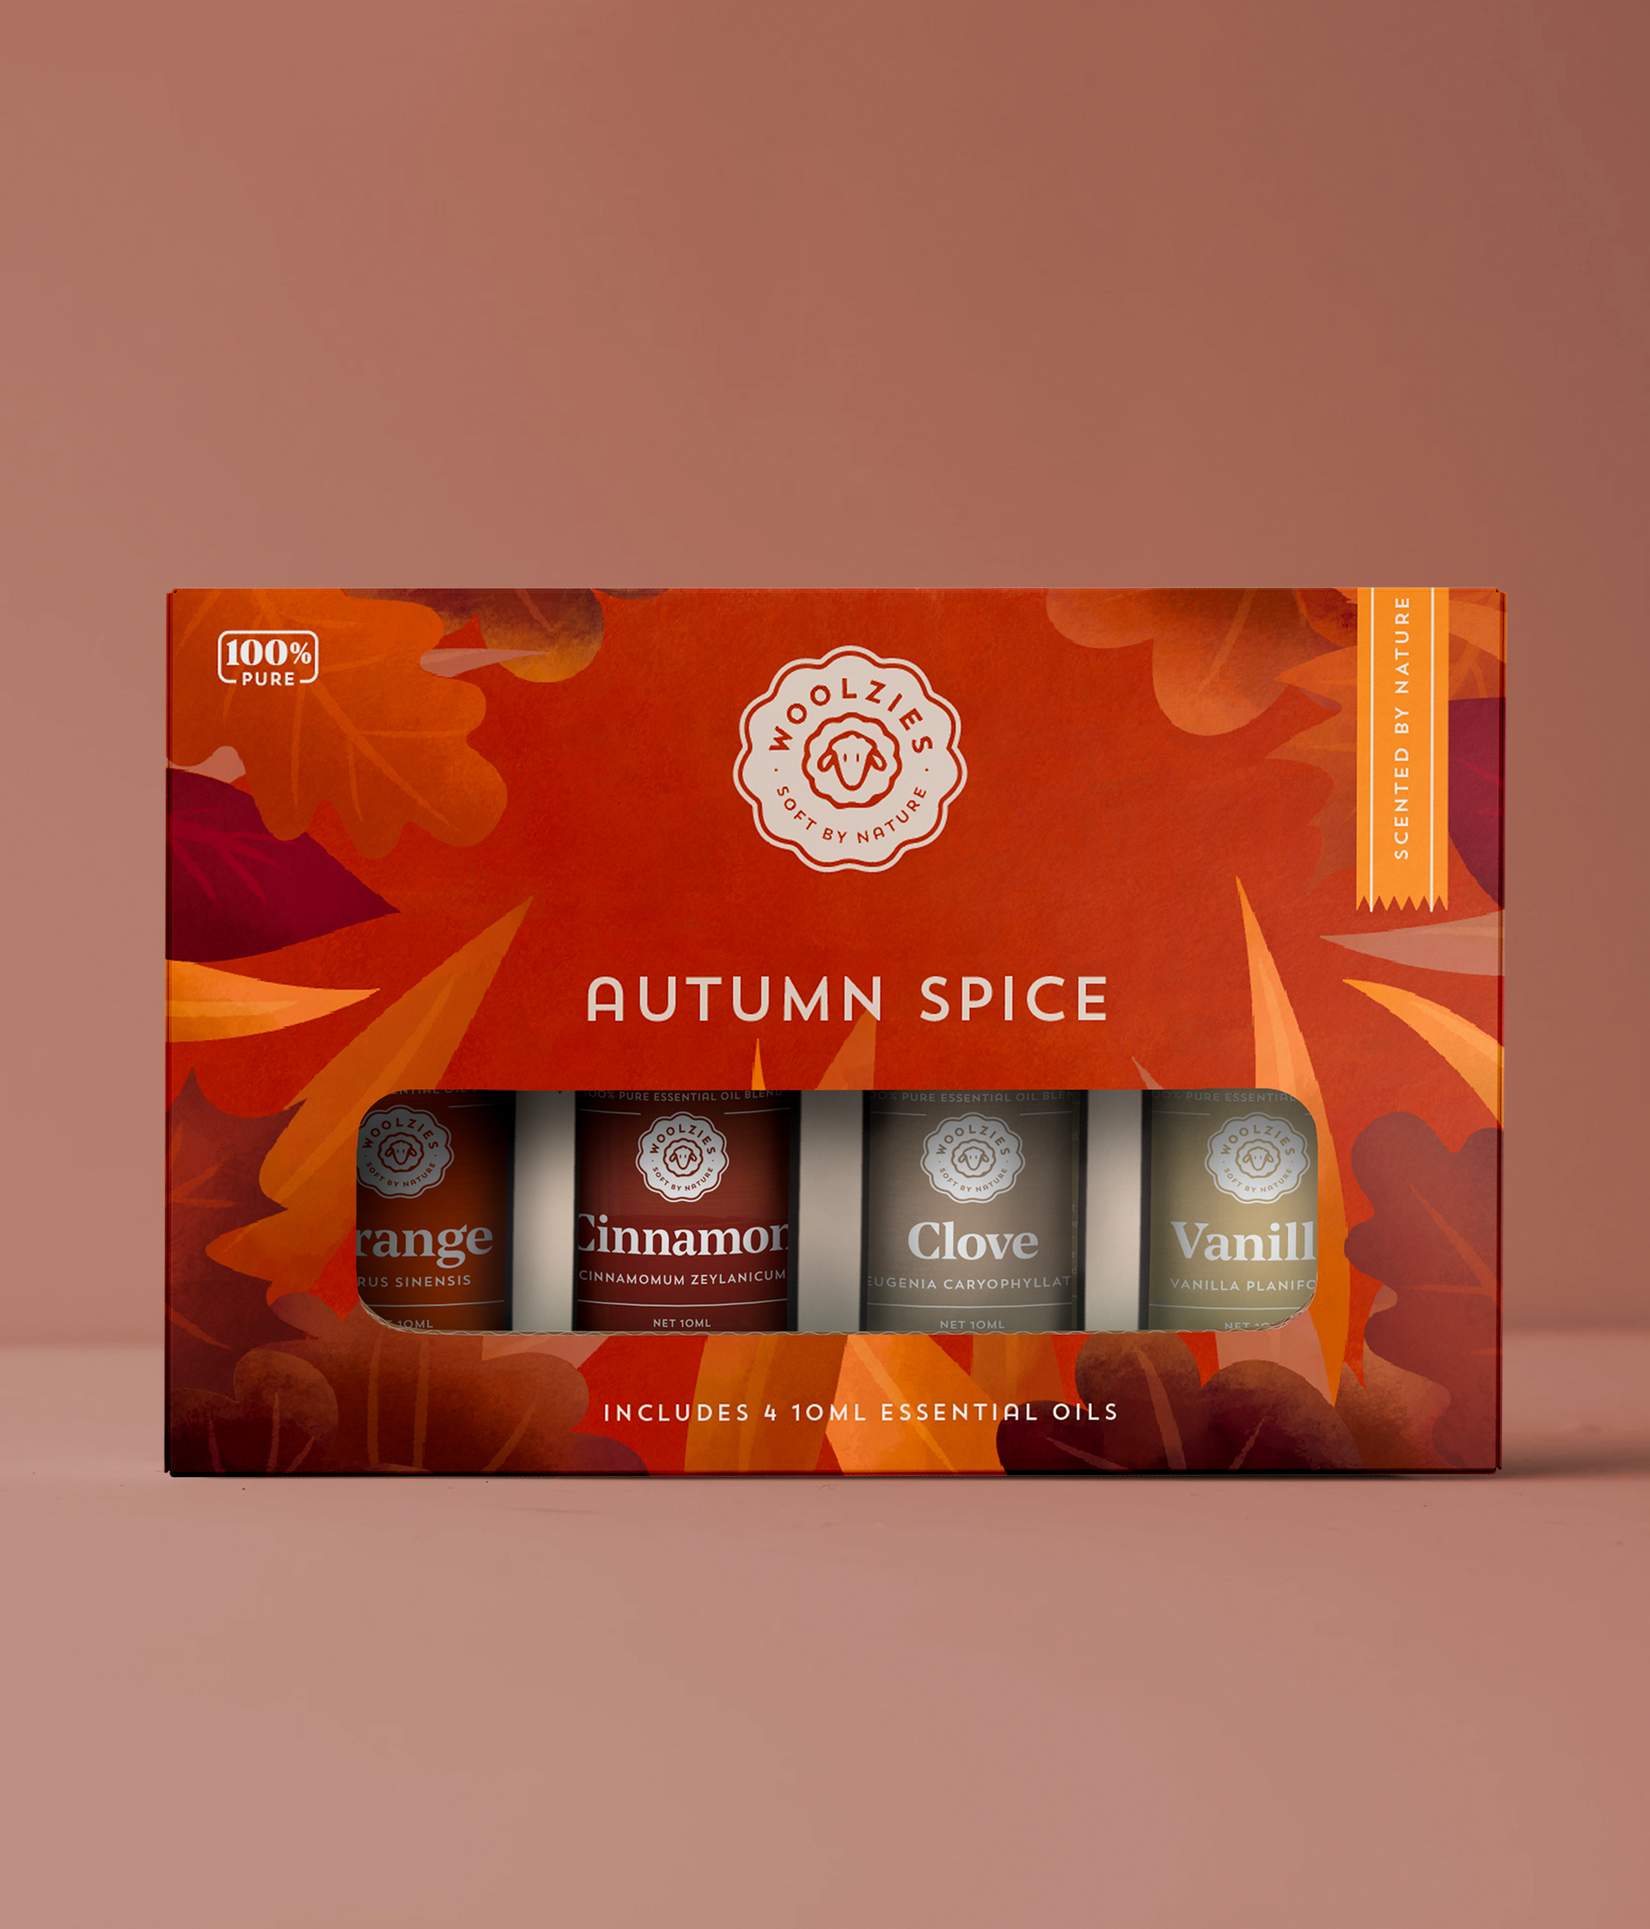 The Autumn Spice Collection